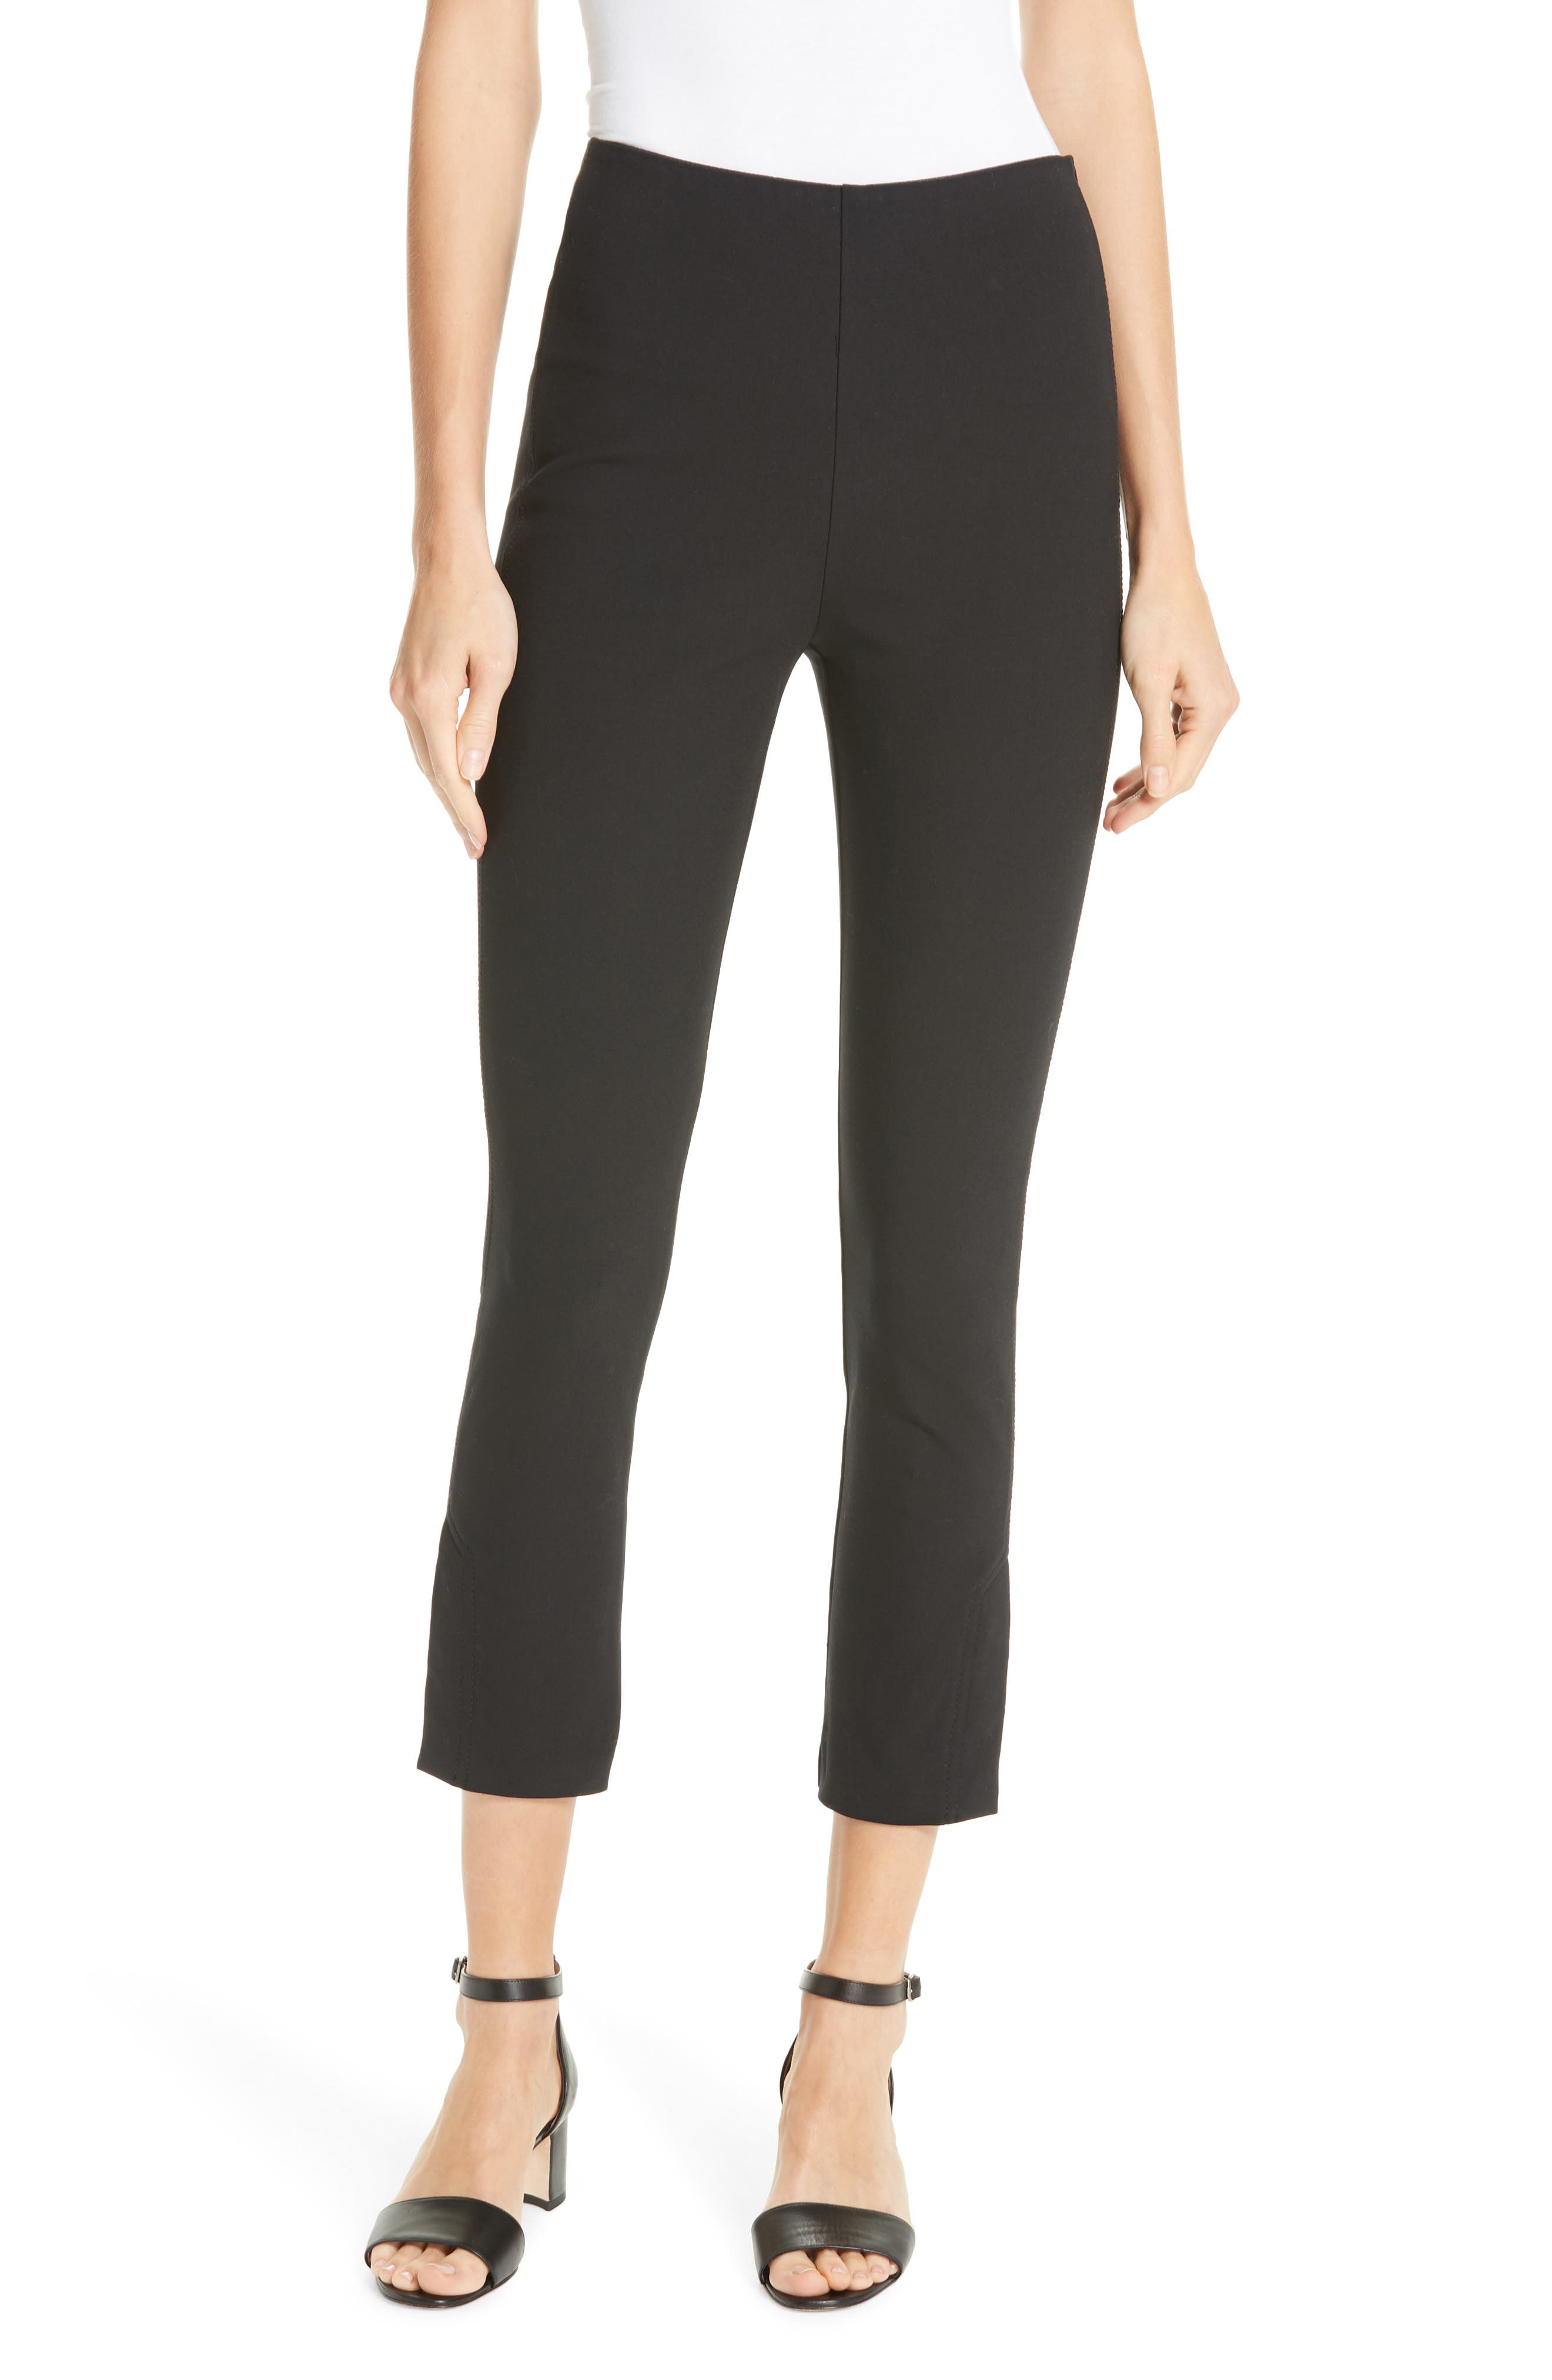 DEREK LAM 10 CROSBY Sullivan Leggings, Main, color, BLACK